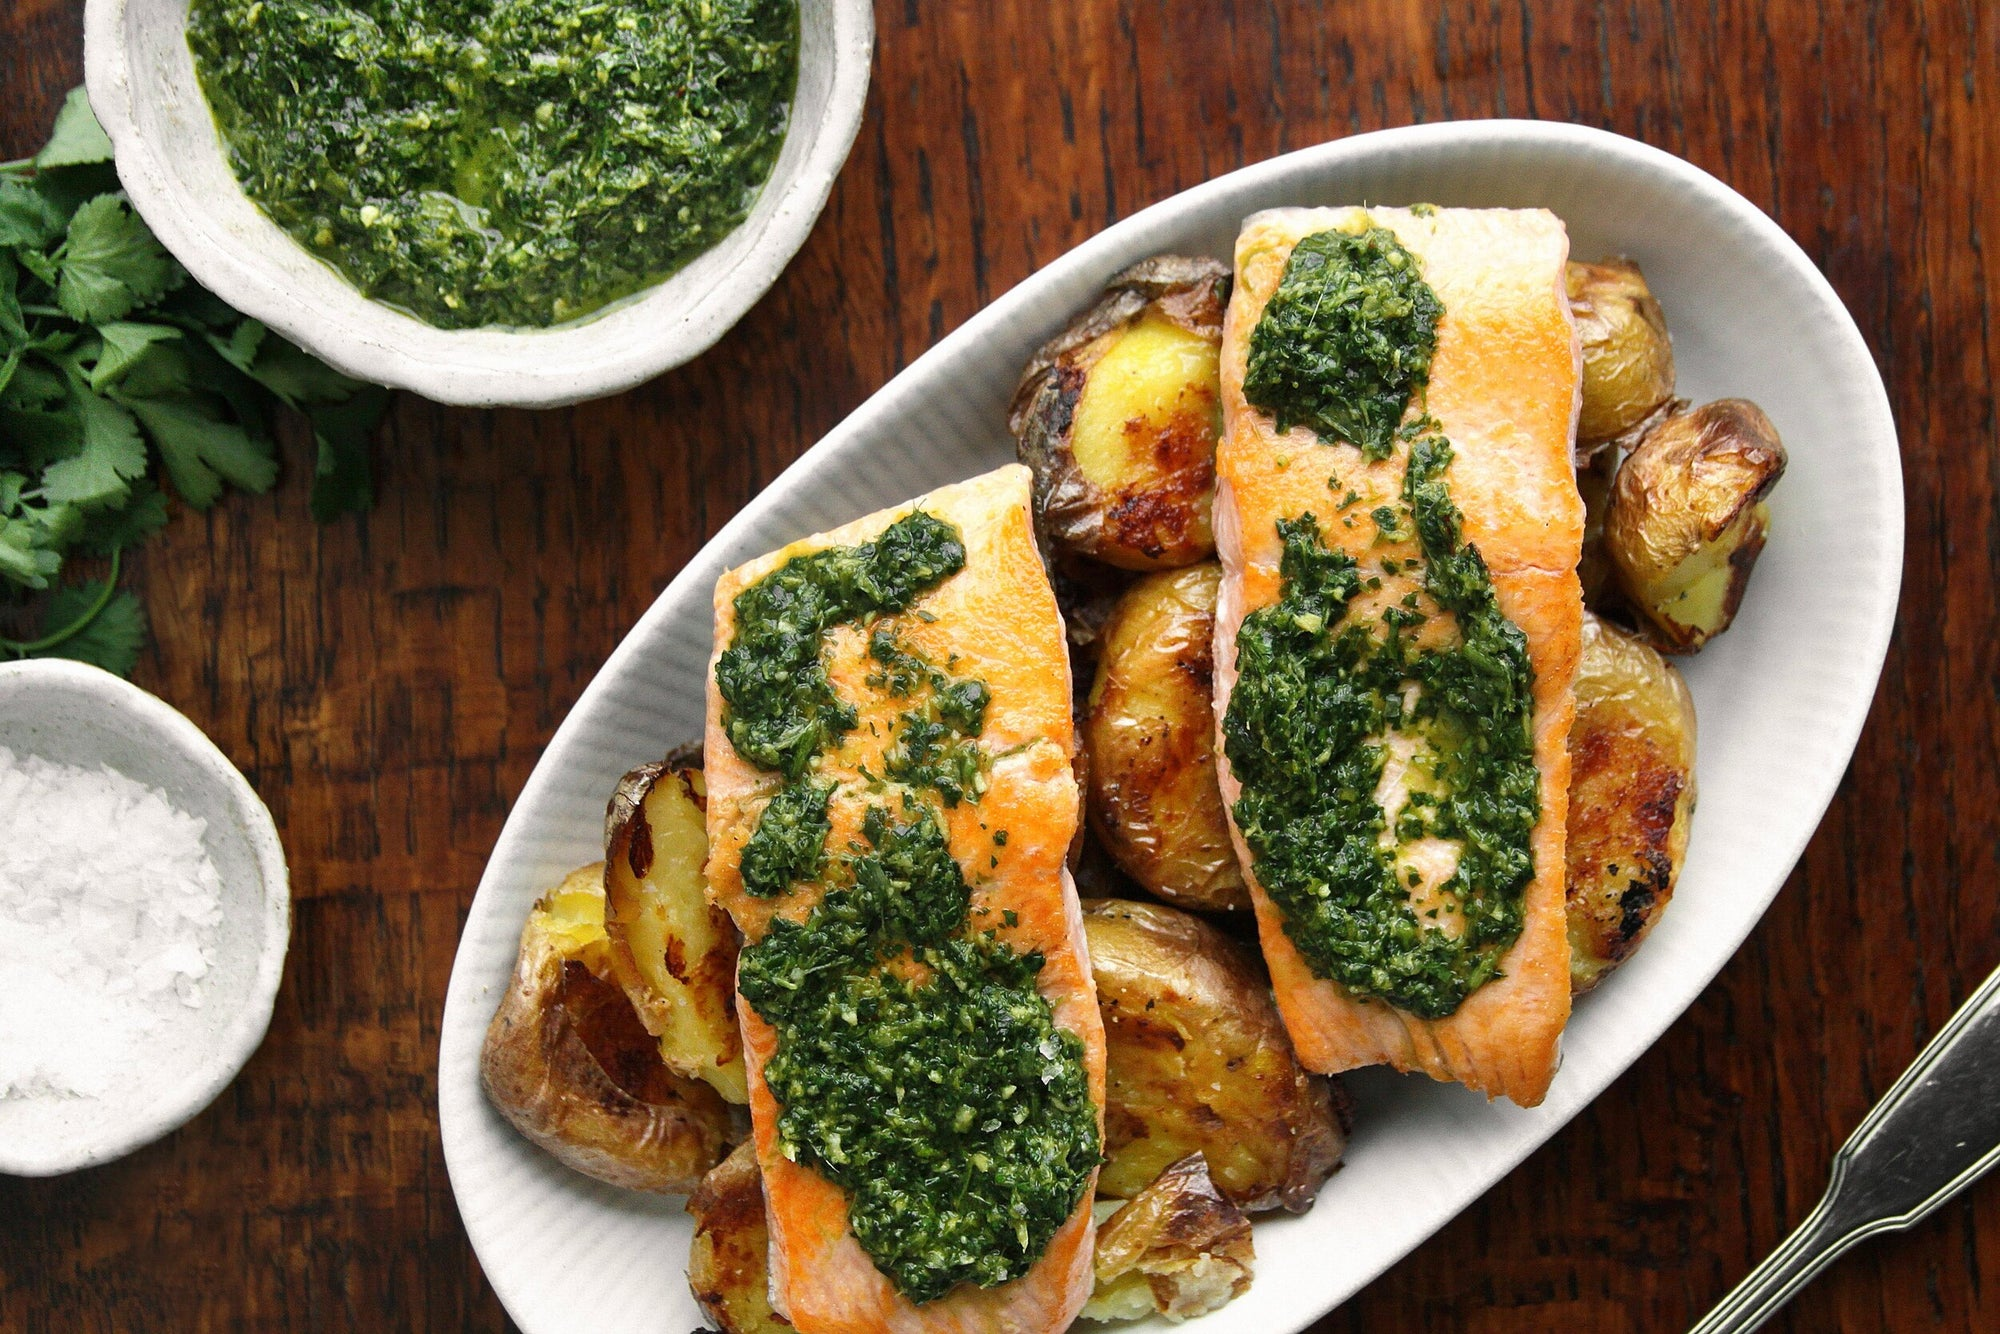 Wulf's Kitchen: Pan-Fried Trout with Ginger-Cilantro Sauce